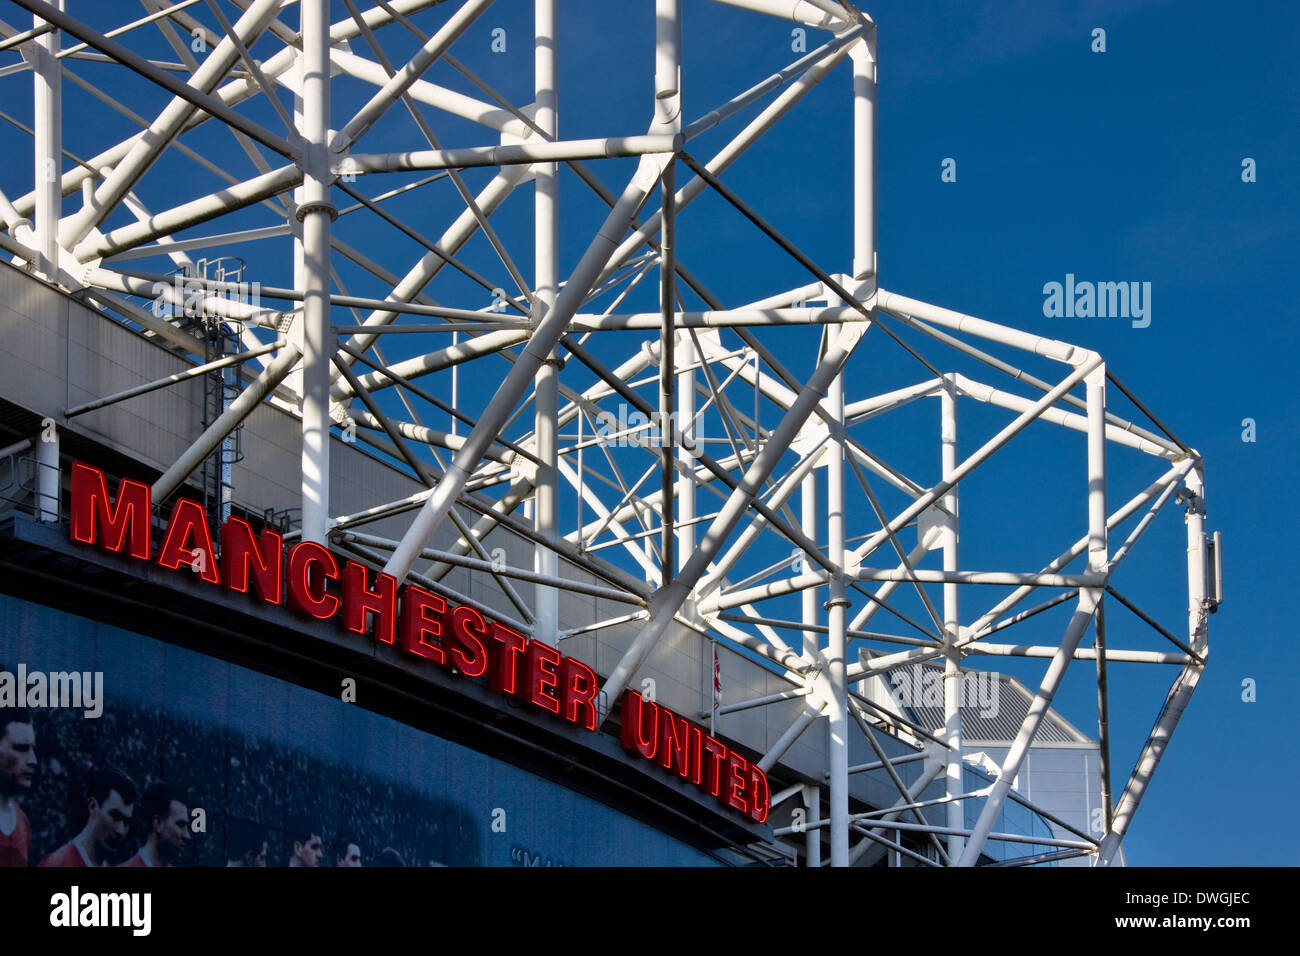 Manchester United Football Stadium in Old Trafford in Manchester in the United Kingdom - Stock Image